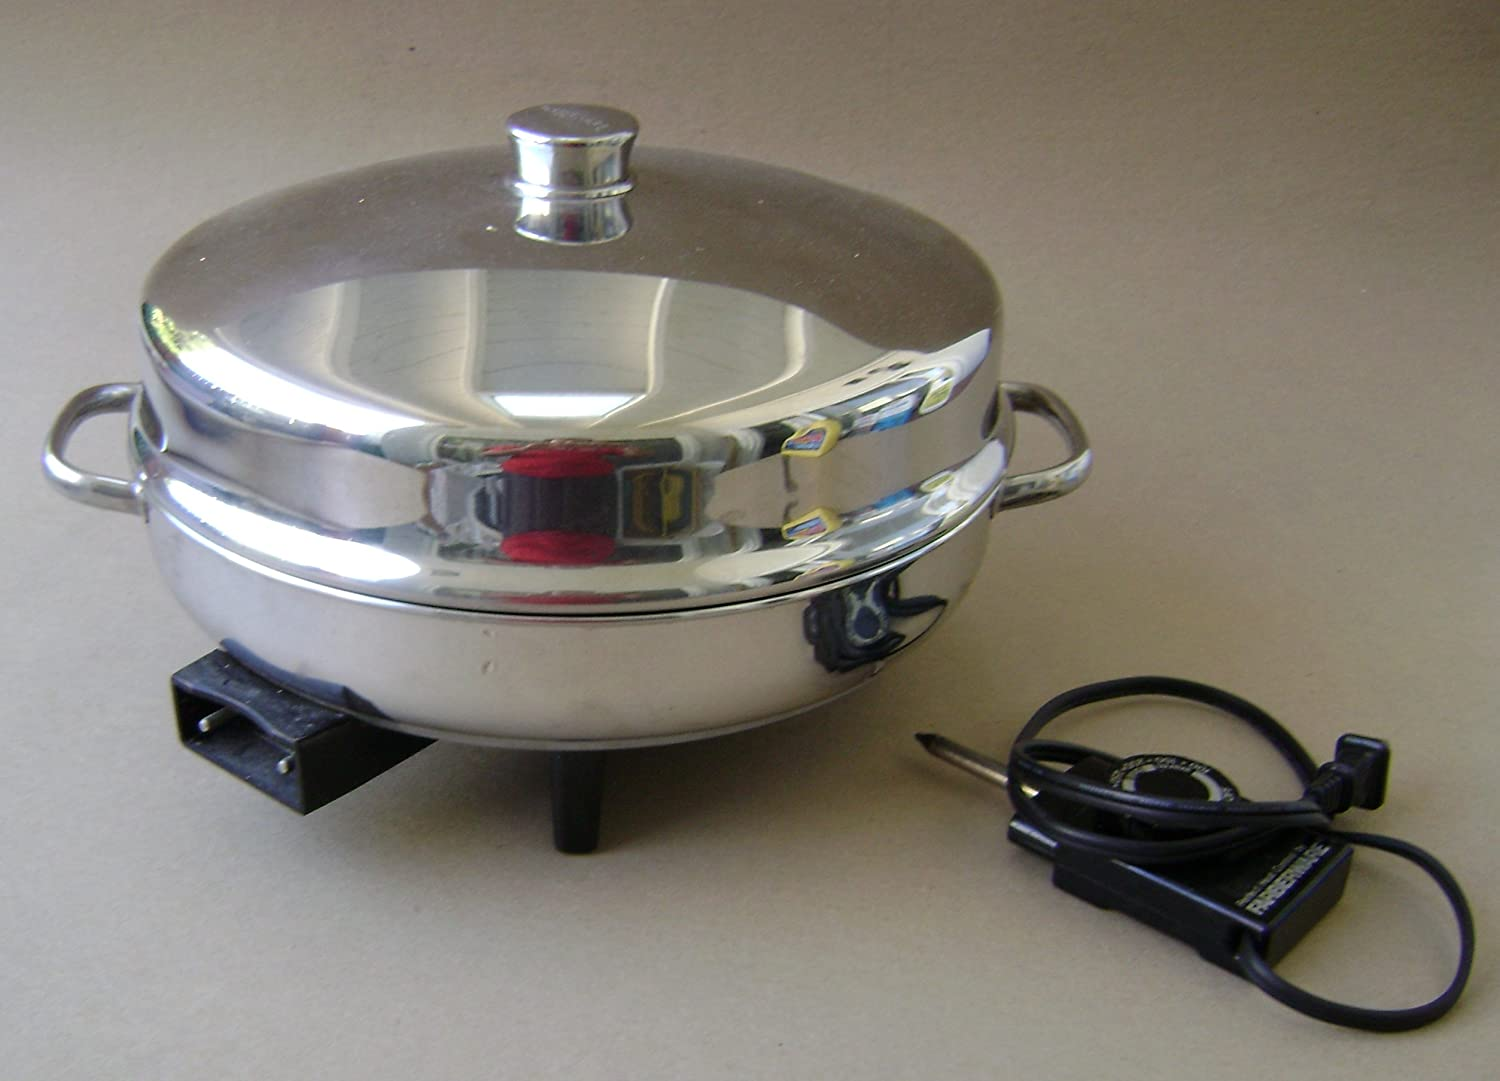 Vintage Farberware 344A 12 inch Electric Fryer Skillet w/ Dome Lid - Includes manual, probe heat control and roasting rack